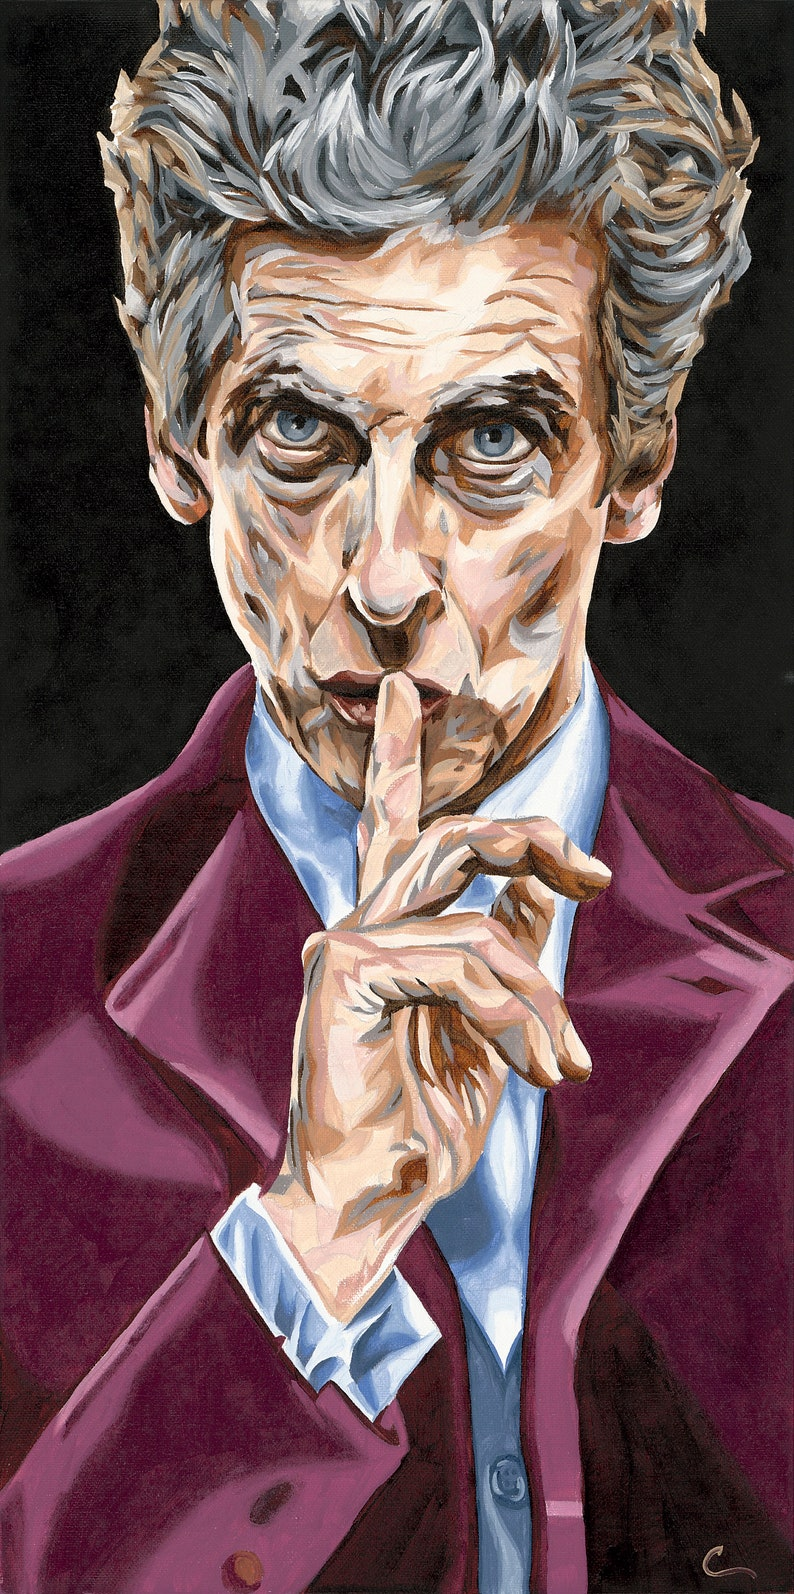 Doctor Who The Twelfth Doctor Original Art Print 10x20 Etsy